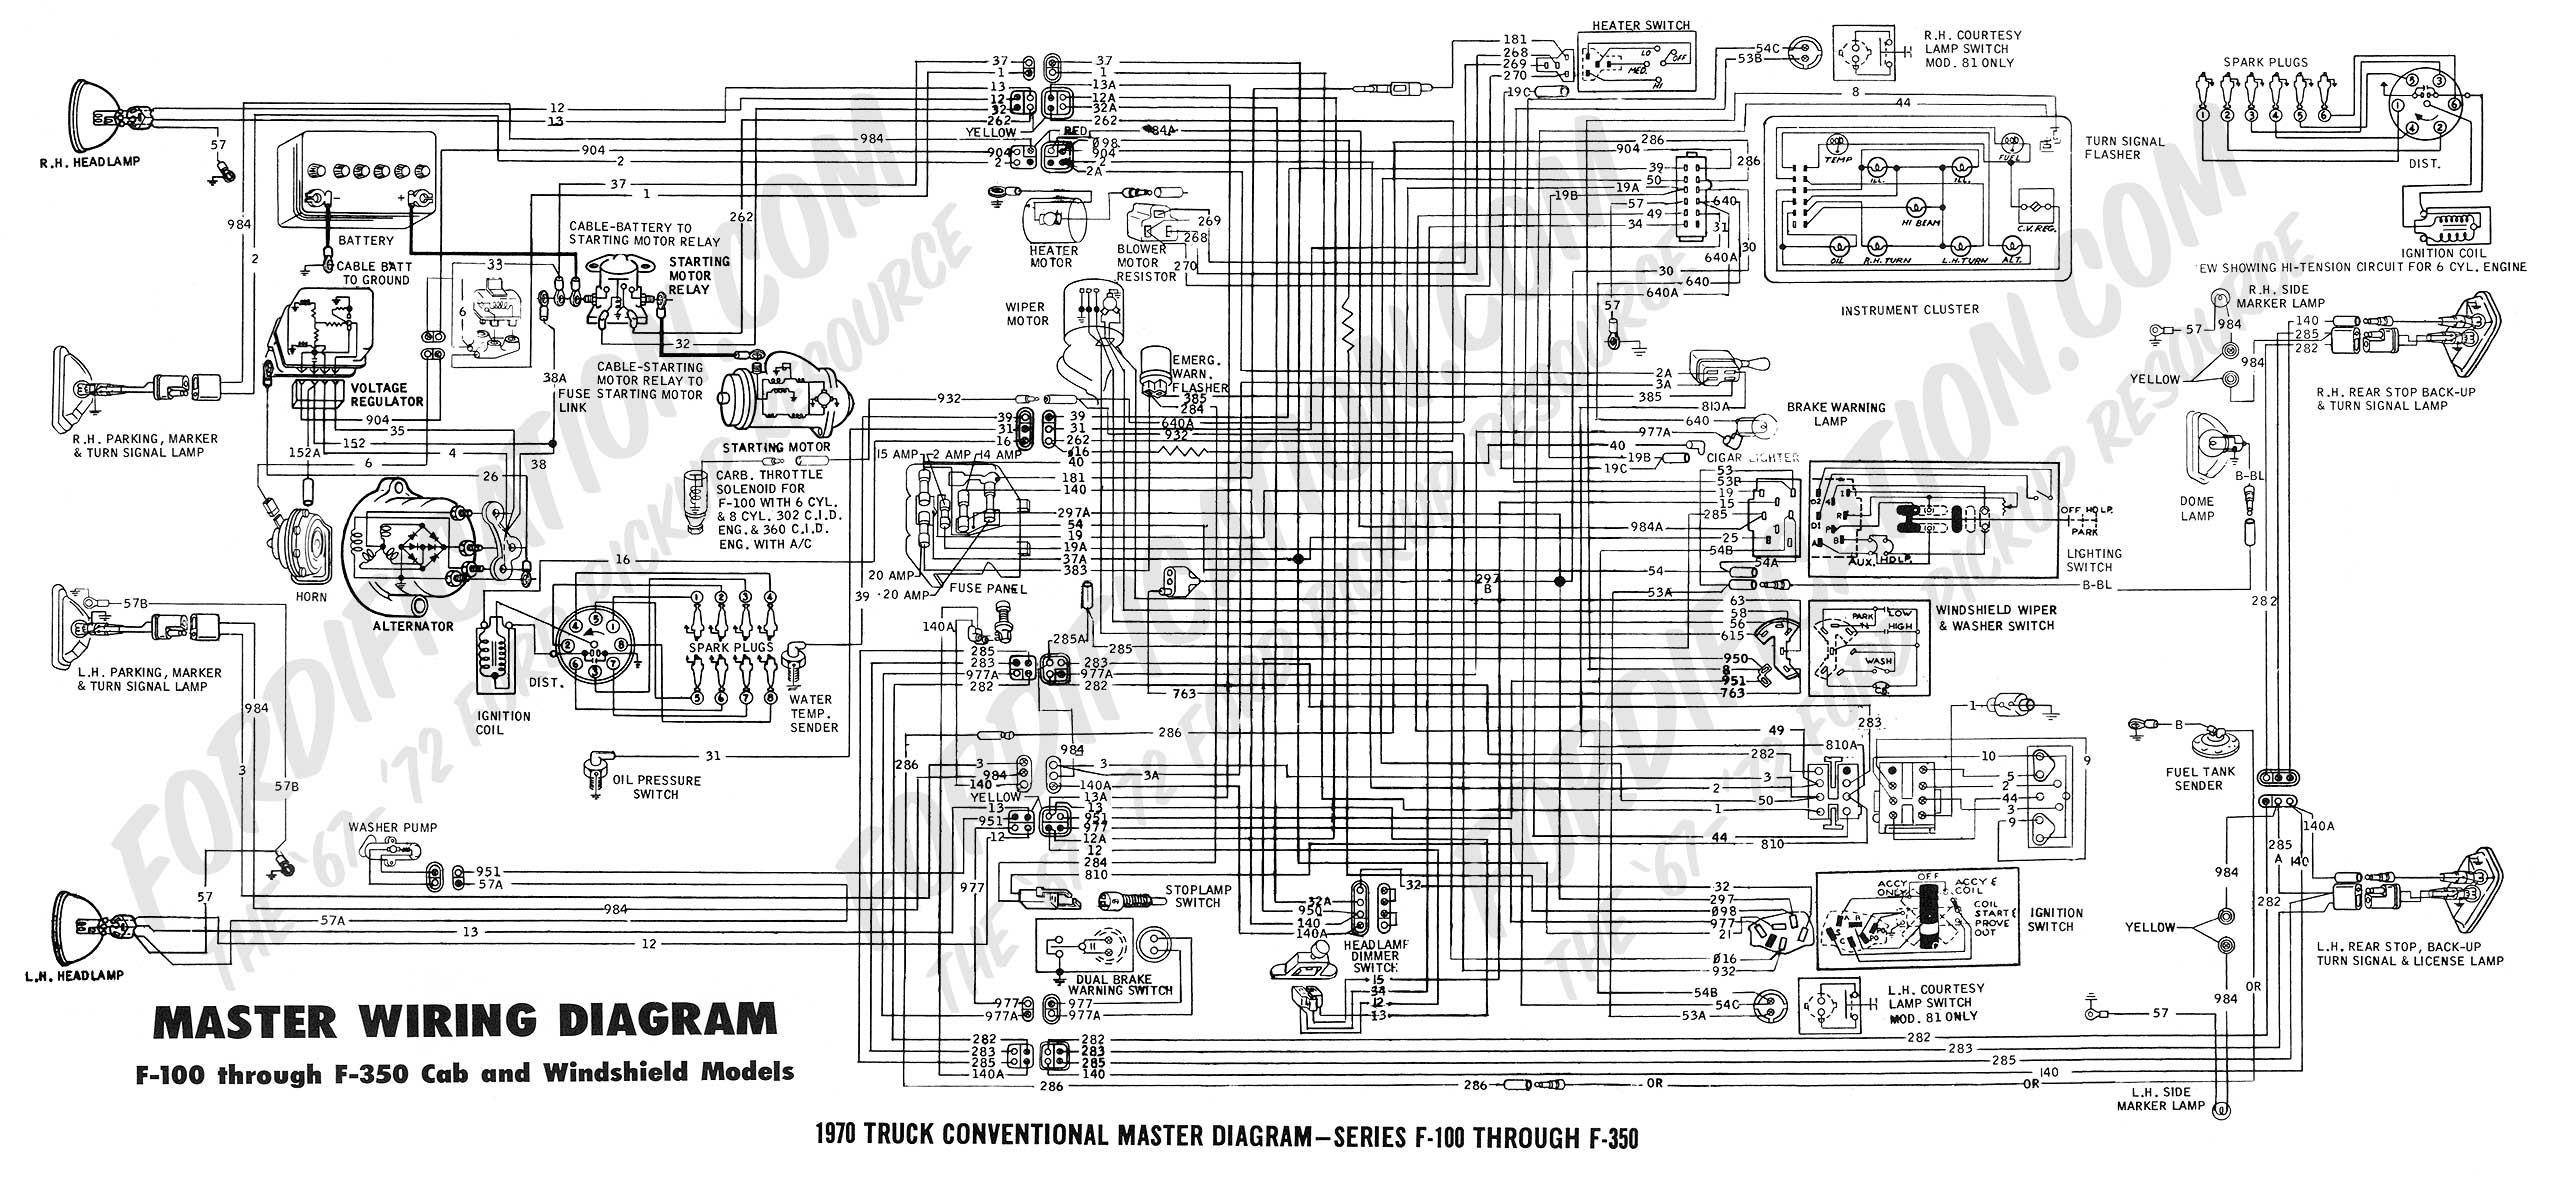 1970 ignition switch diagram - ford truck enthusiasts forums  ford truck enthusiasts